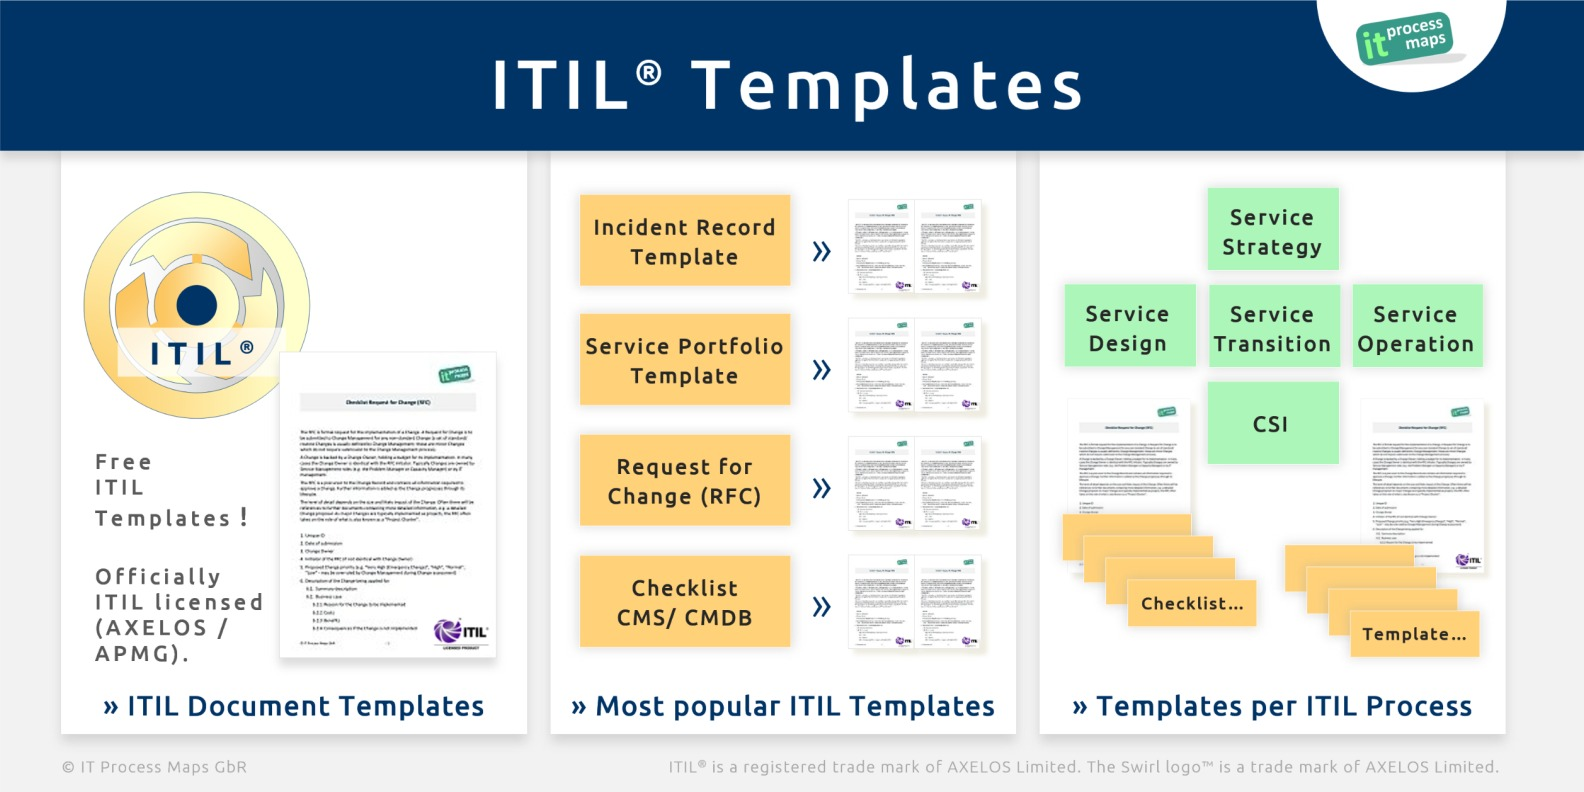 Free ITIL templates and checklists - Templates ITIL 2011 - Most popular ITIL templates - Templates and checklists per ITIL process.